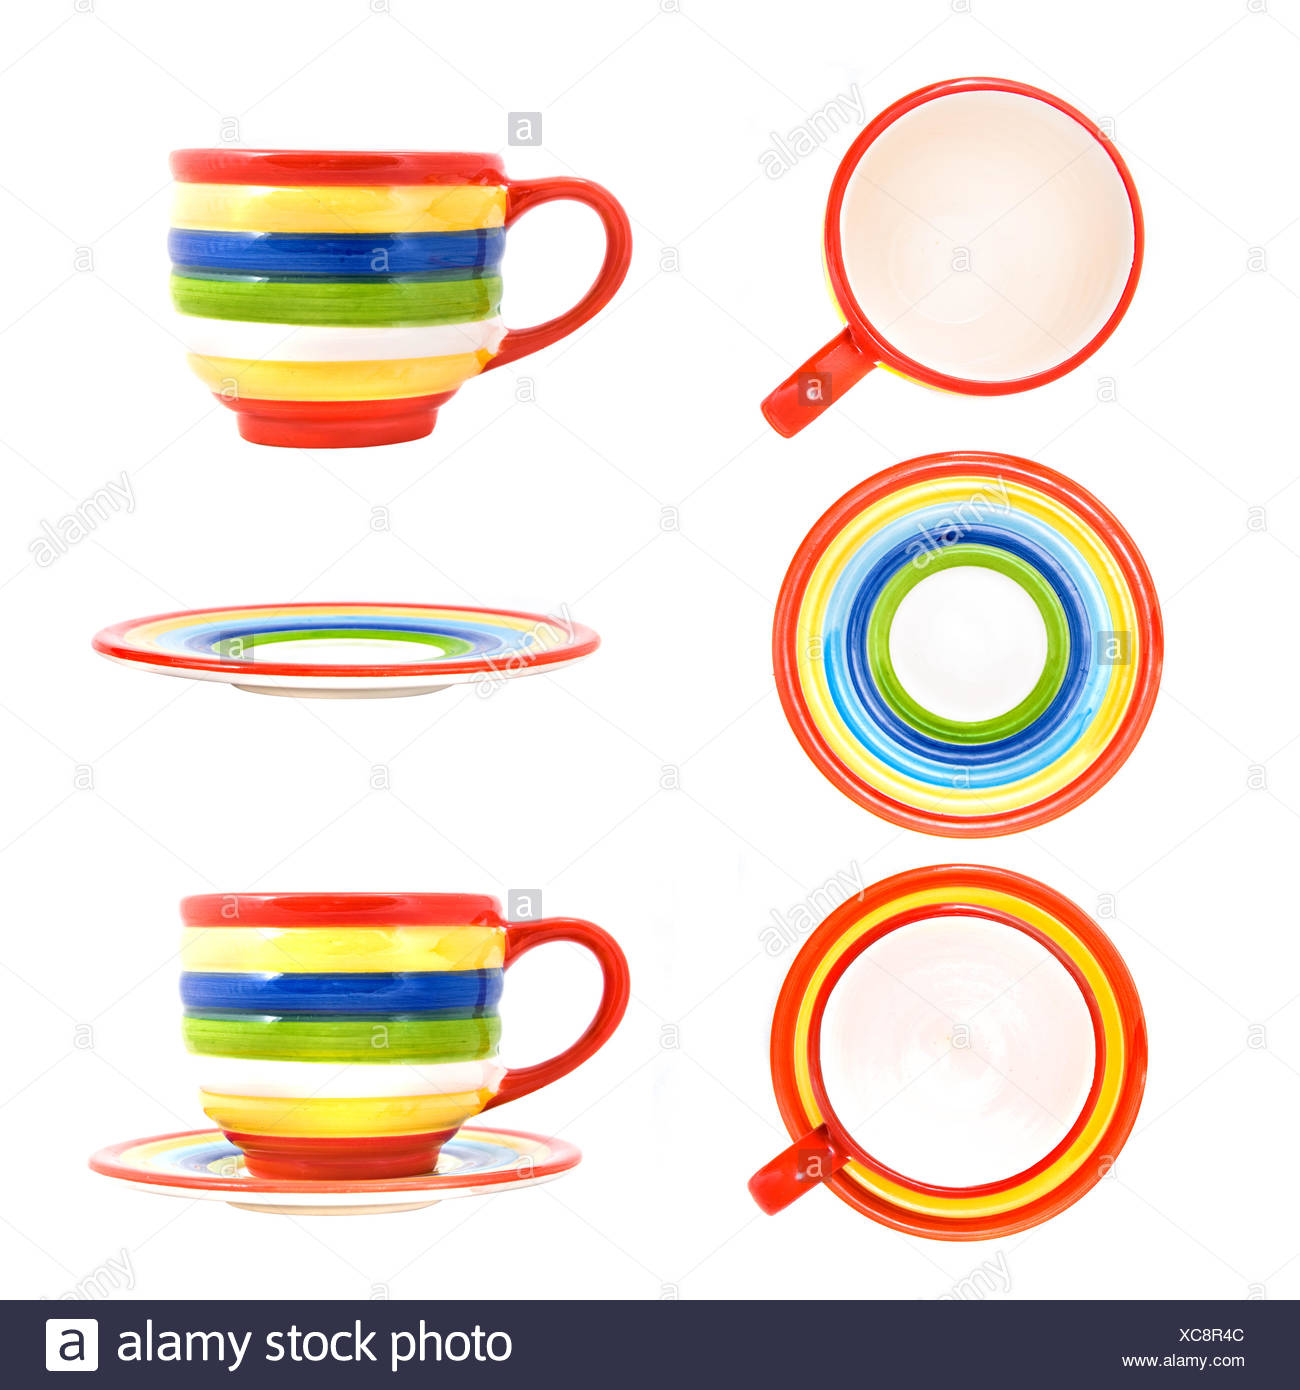 Ceramic funny color cup with saucer isolated on white - Stock Image